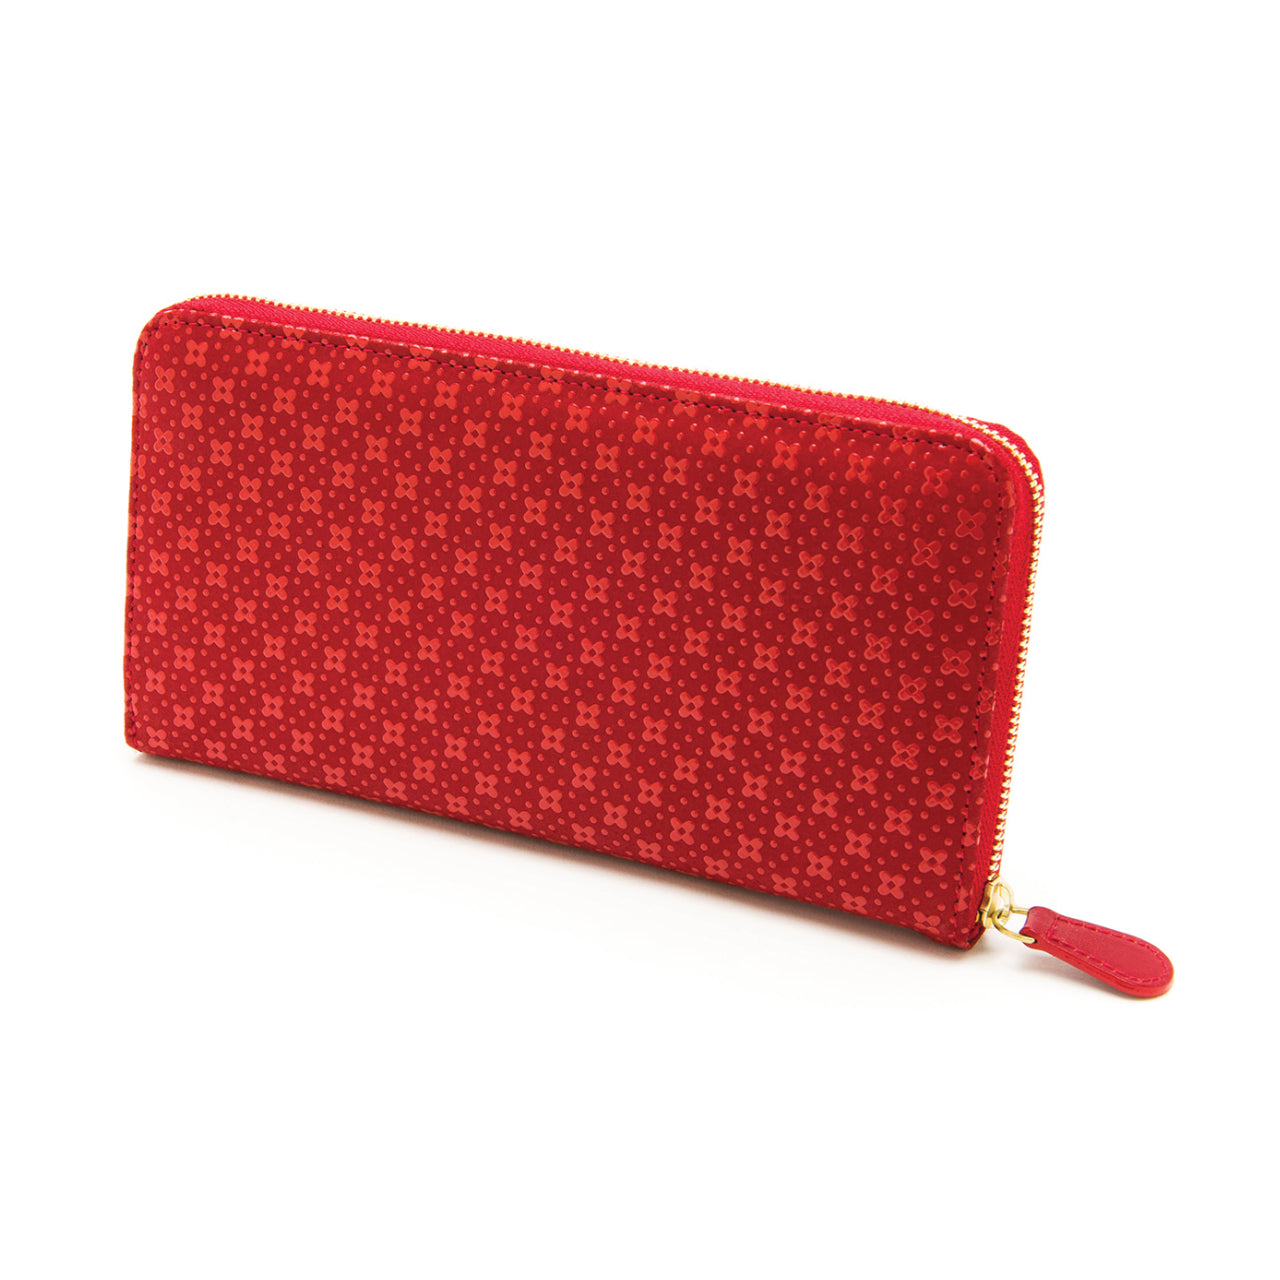 INDEN ZIPPED LONG WALLET R x R Flower Lattice